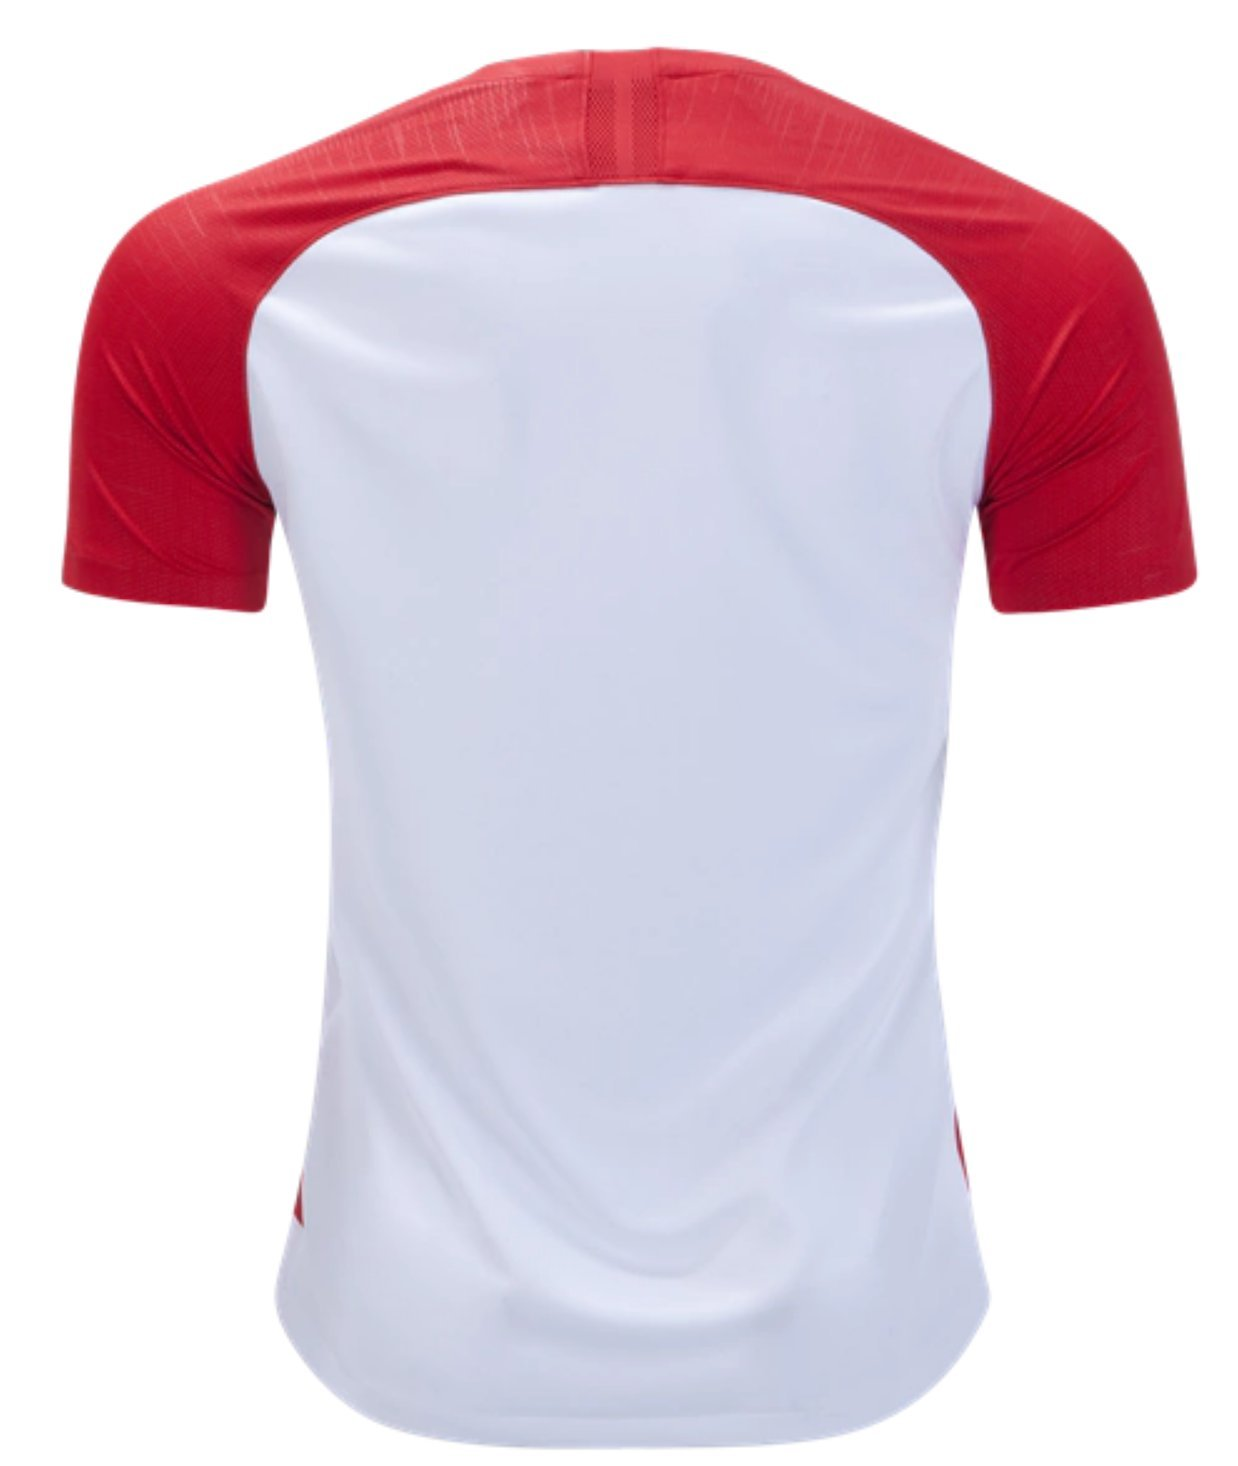 904f7b8c ... Team HNS Croatia Soccer Jersey Adult Mens Sizes Football World Cup  Premium Gift Rhinox Group Inc ...